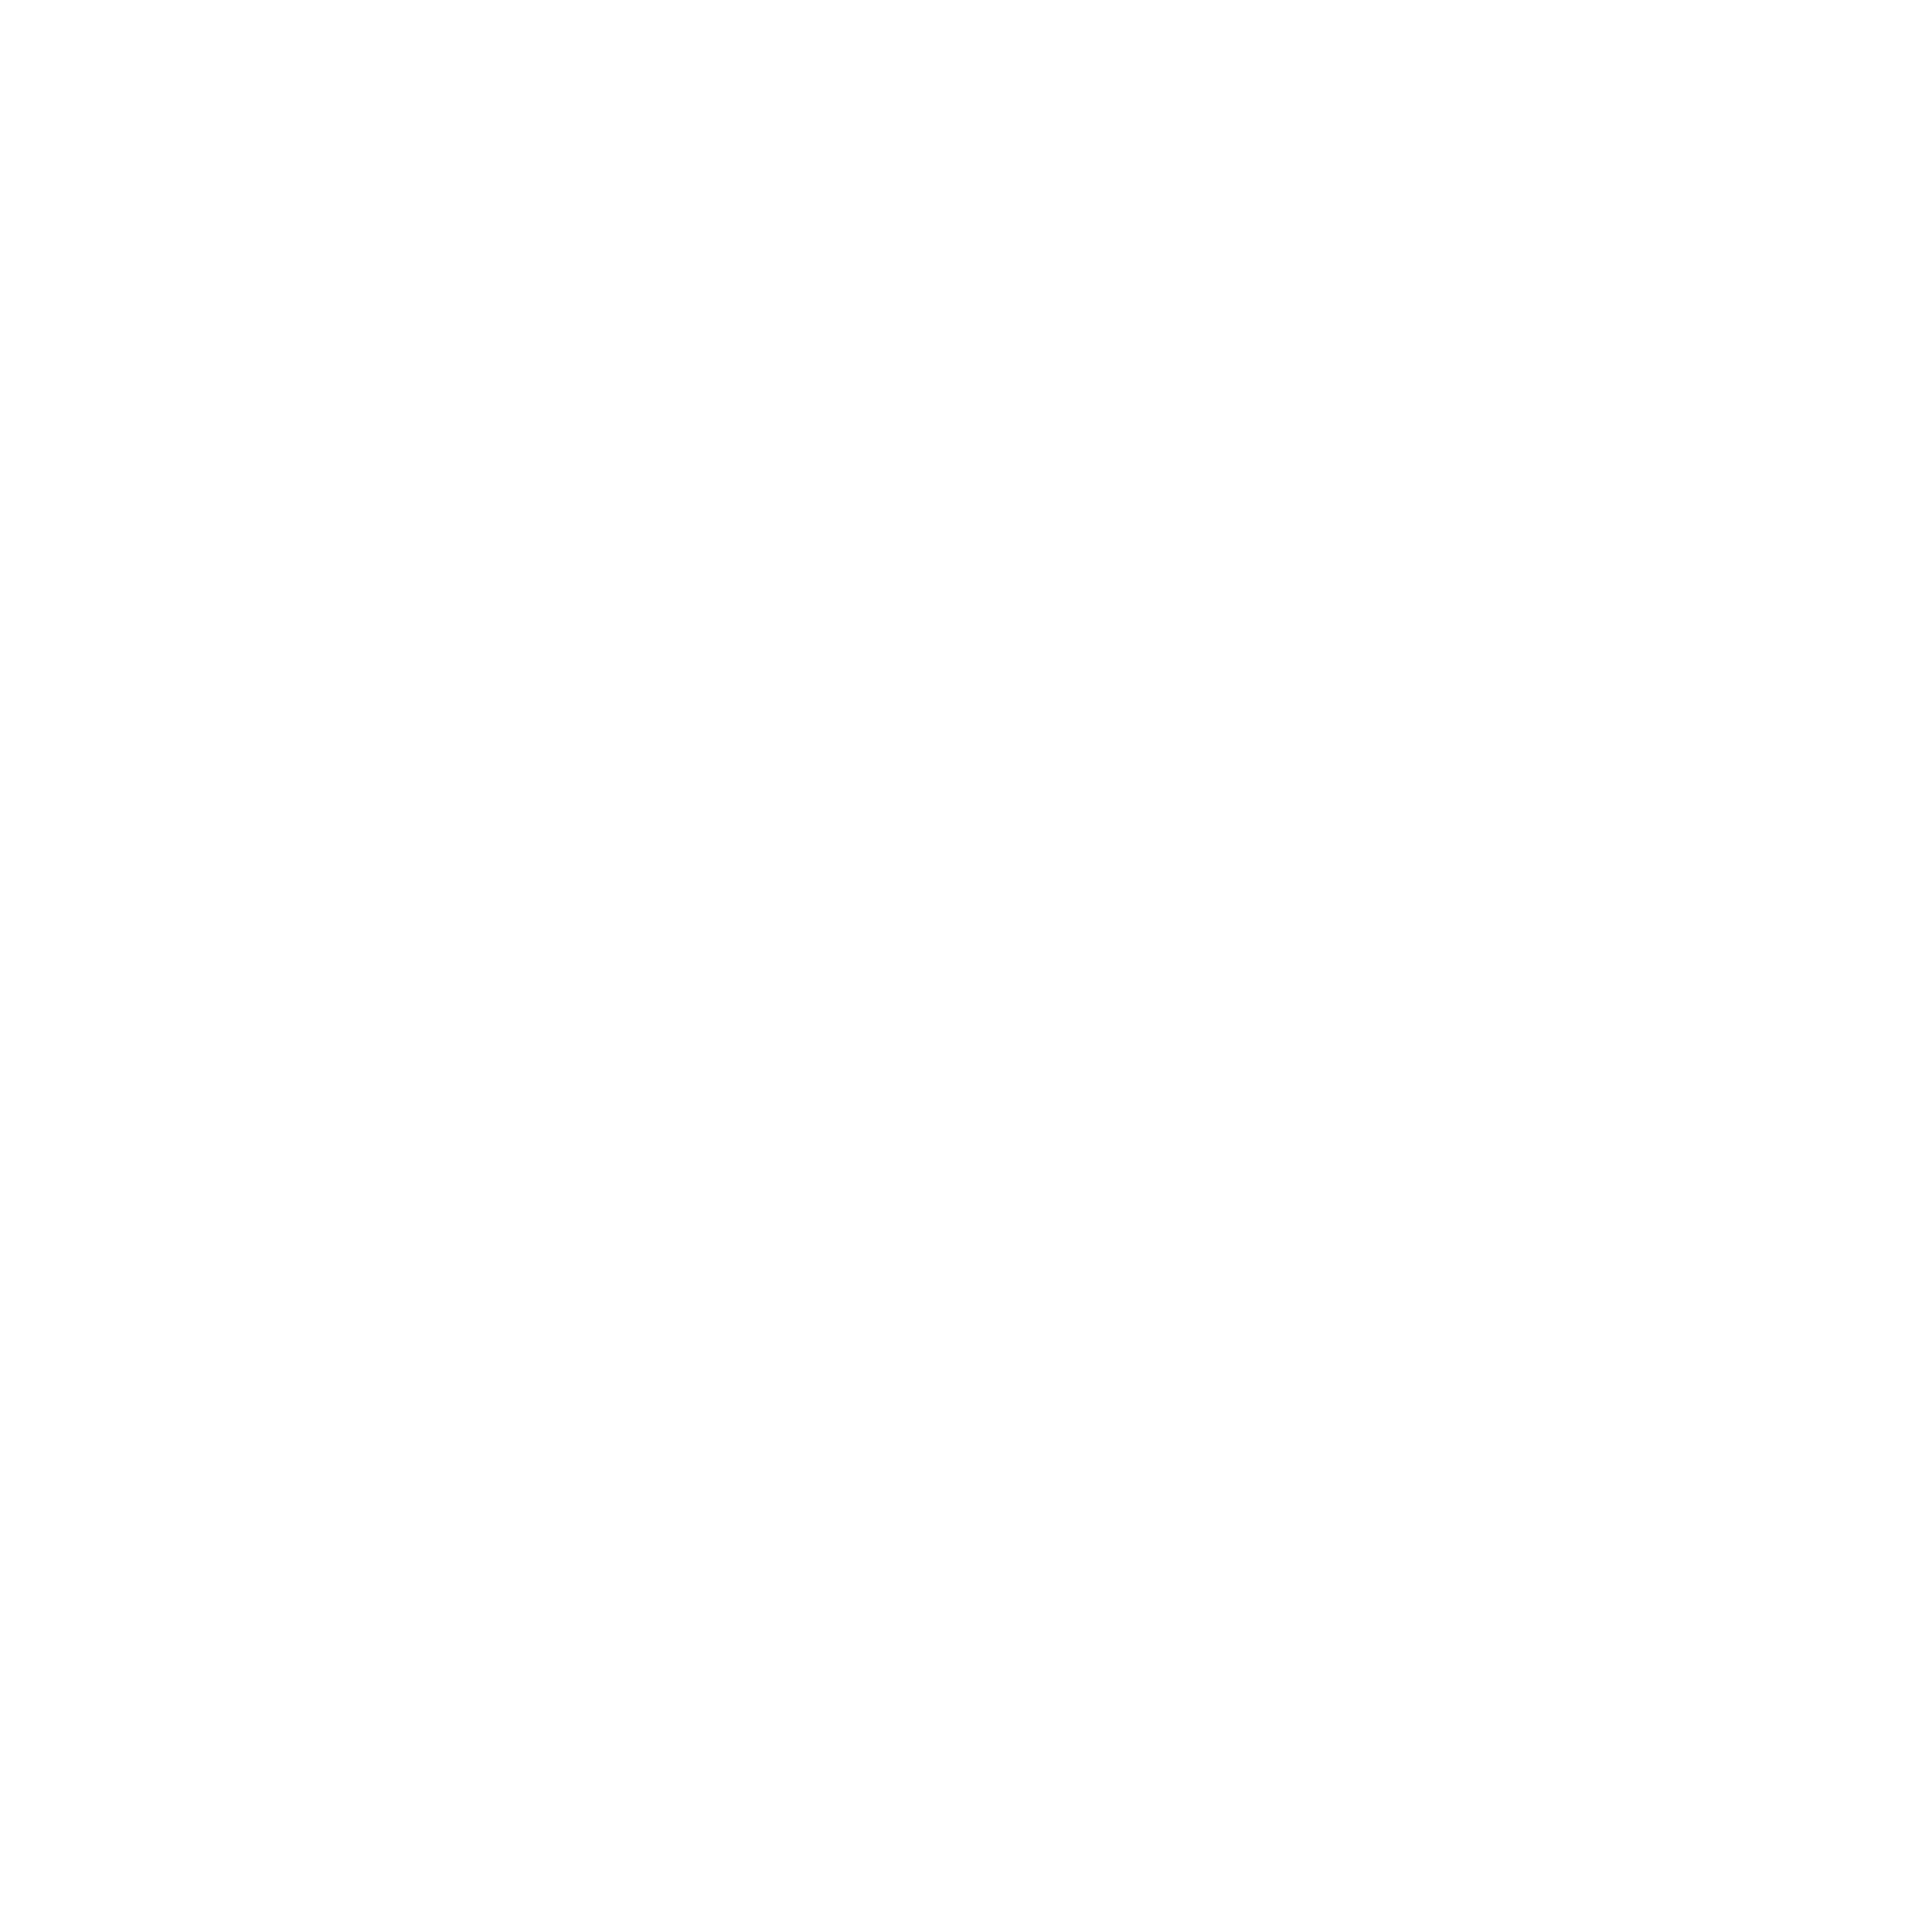 The Wiebes Agency